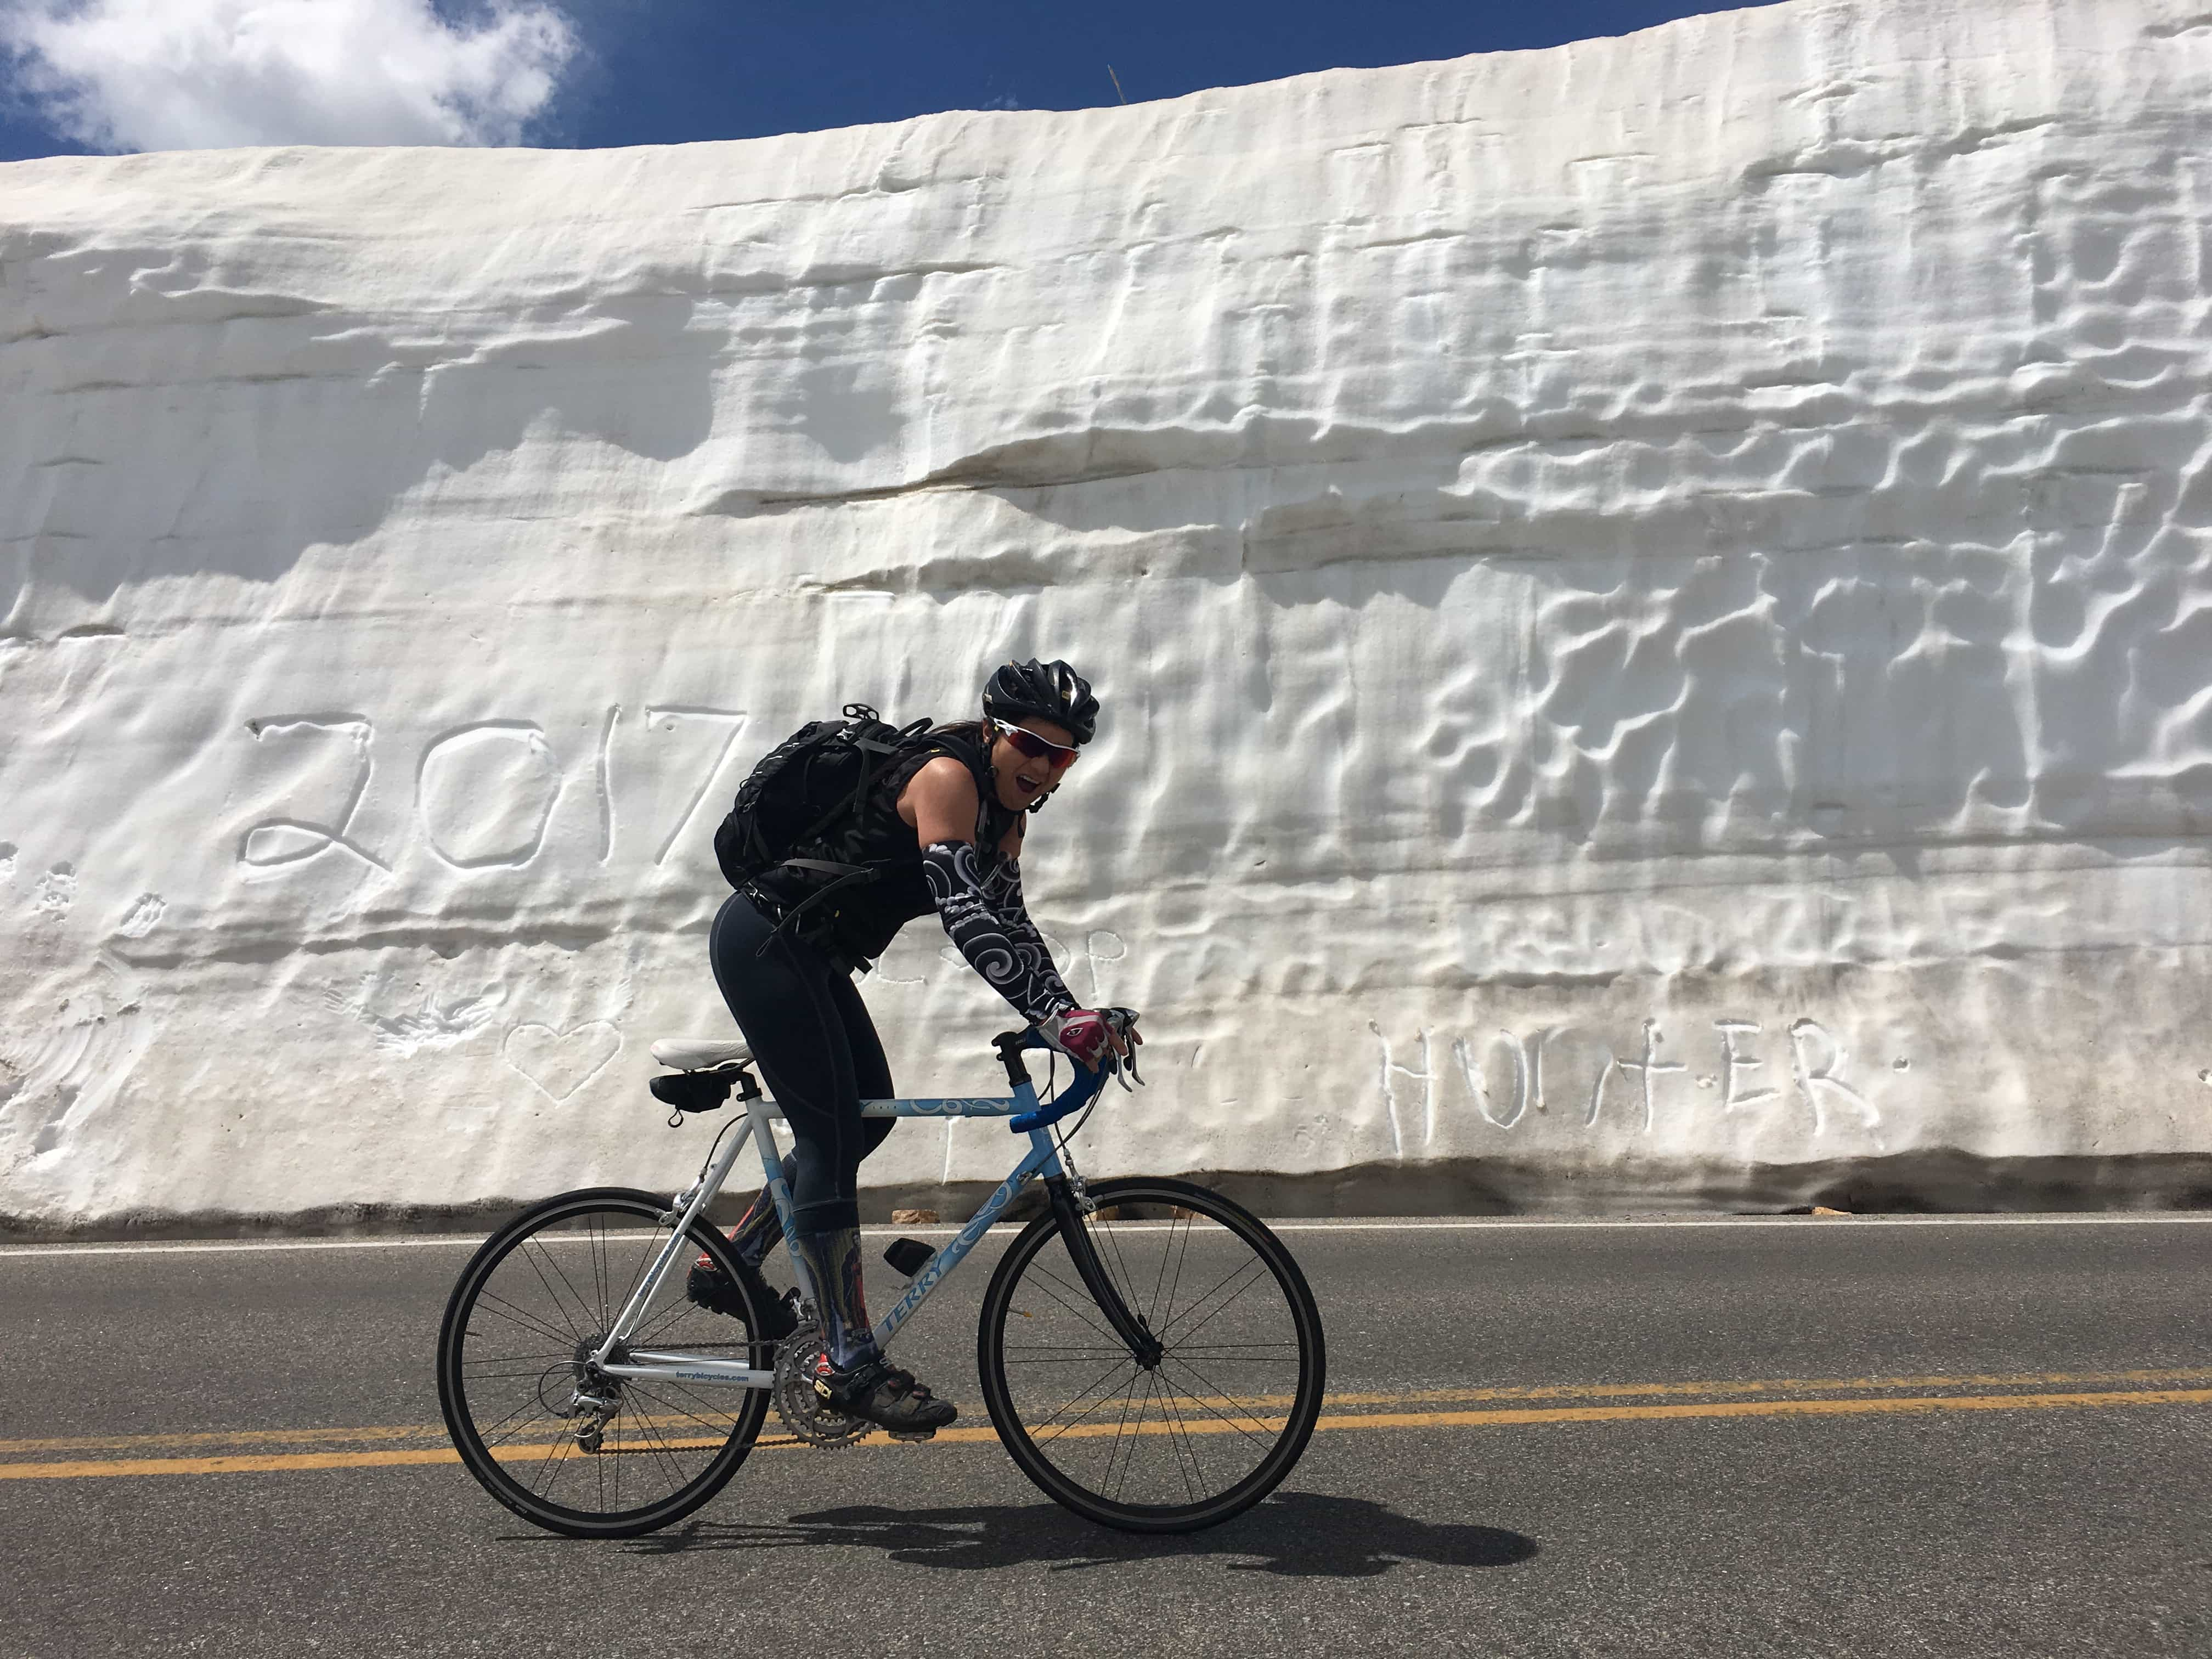 Cyclist riding on a Terry bicycle next to a wall of packed snow or exposed glacier along a road